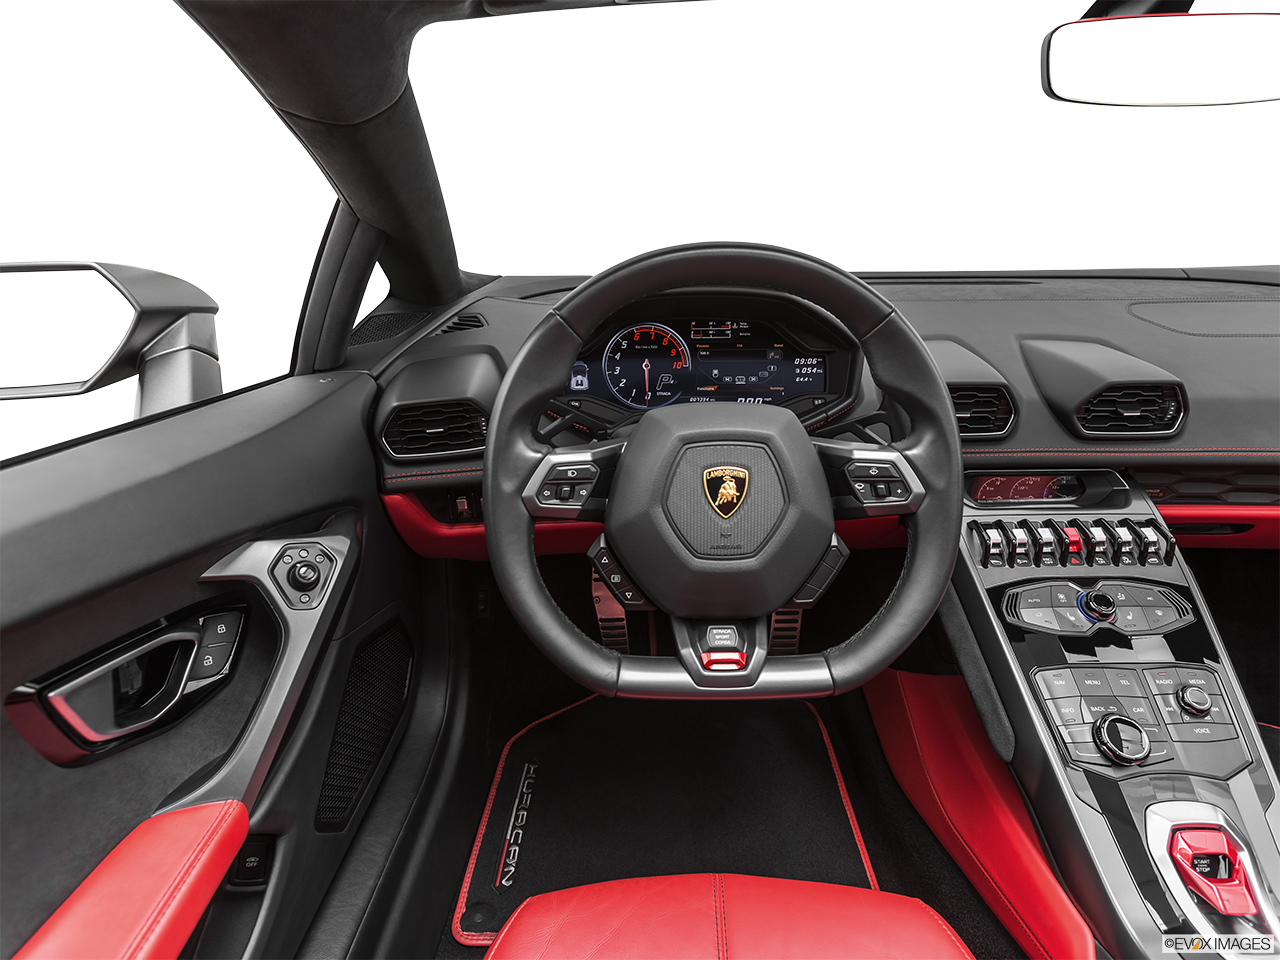 2019 Lamborghini Huracan Spyder LP580-2S Steering wheel/Center Console.